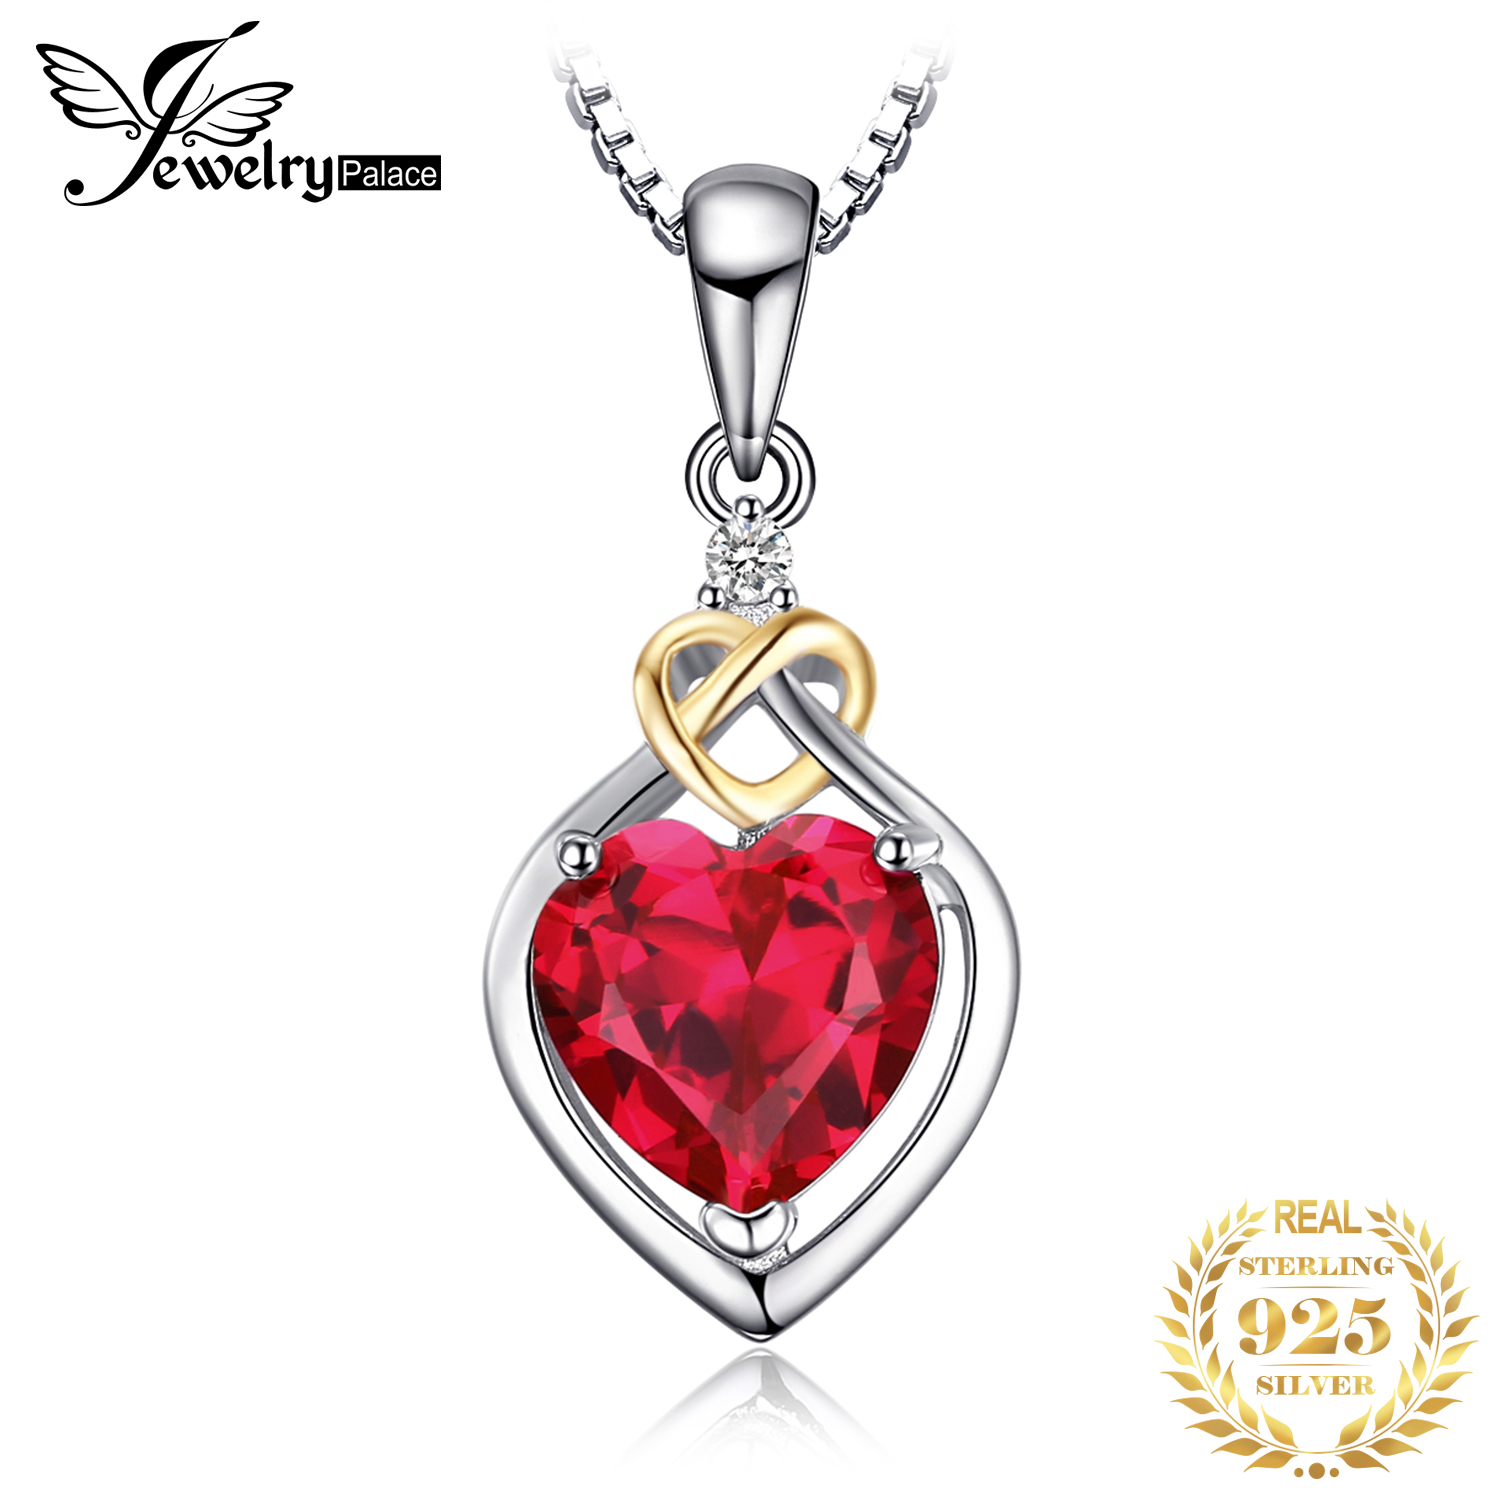 JewelryPalace Heart Created Ruby Pendant Necklace 925 Sterling Silver Gemstones Choker Statement Necklace Women Without Chain